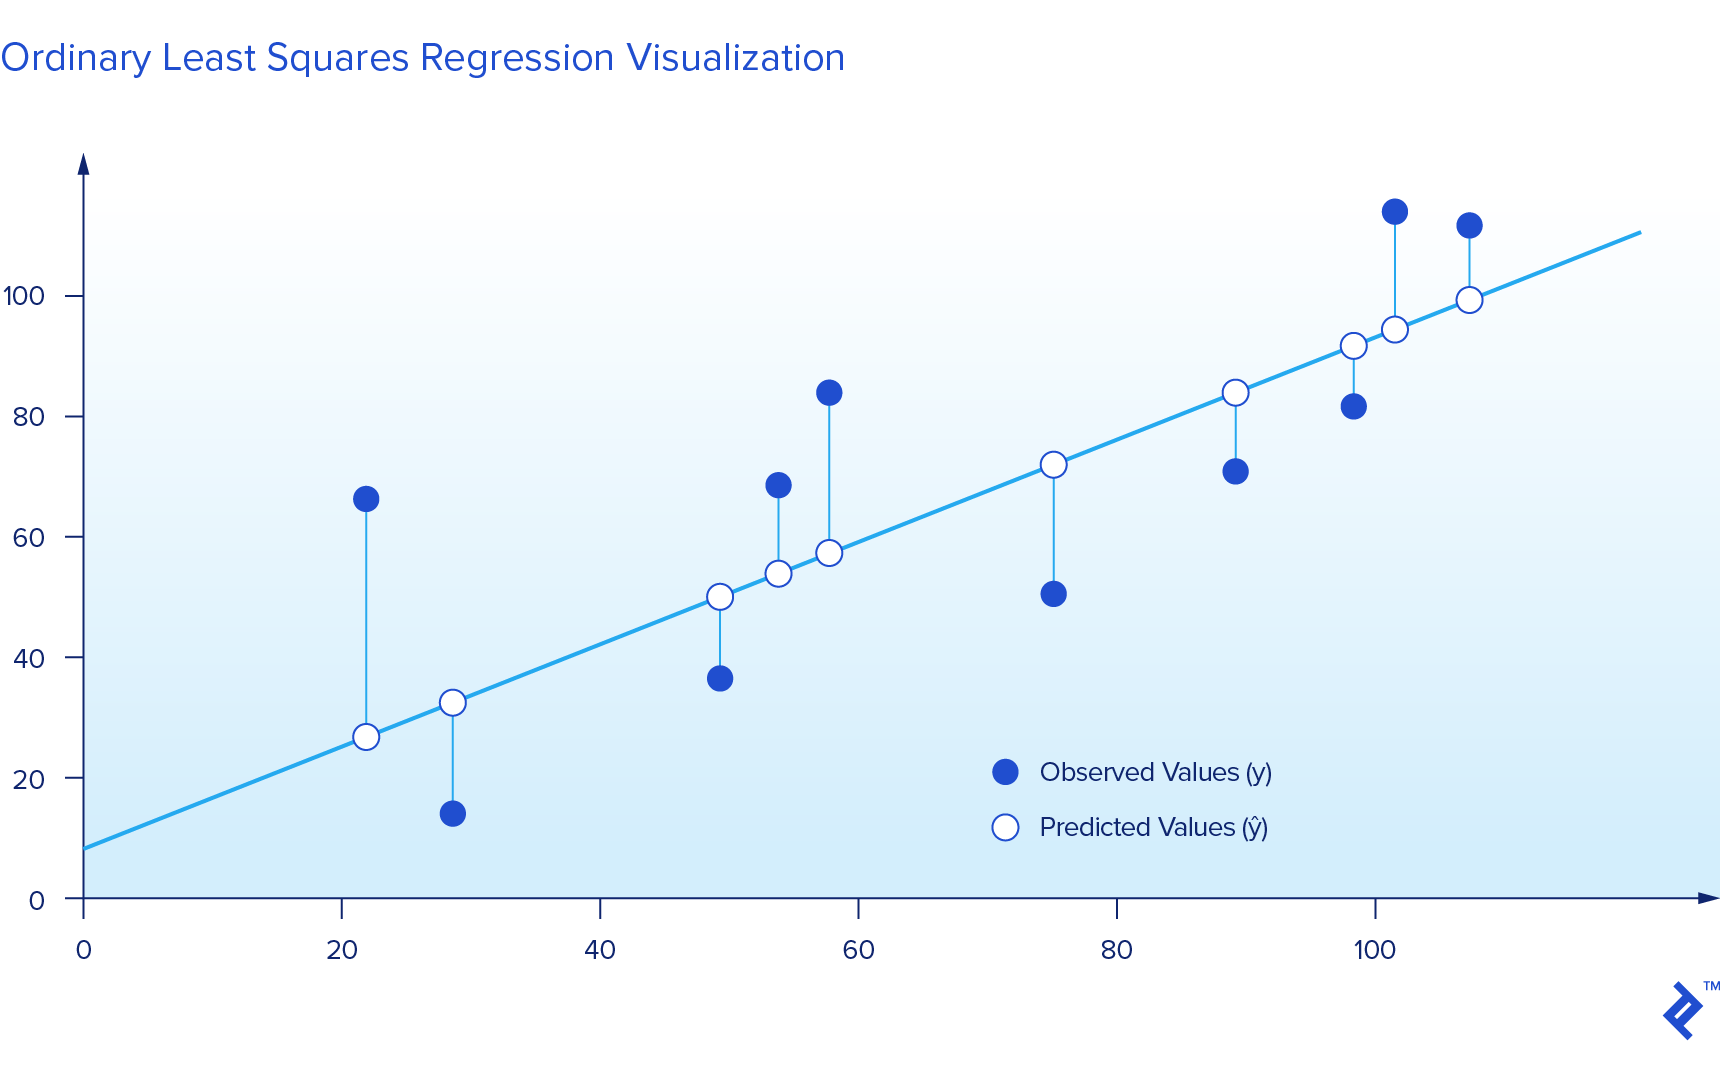 A chart displaying the difference between observed values and predicted values